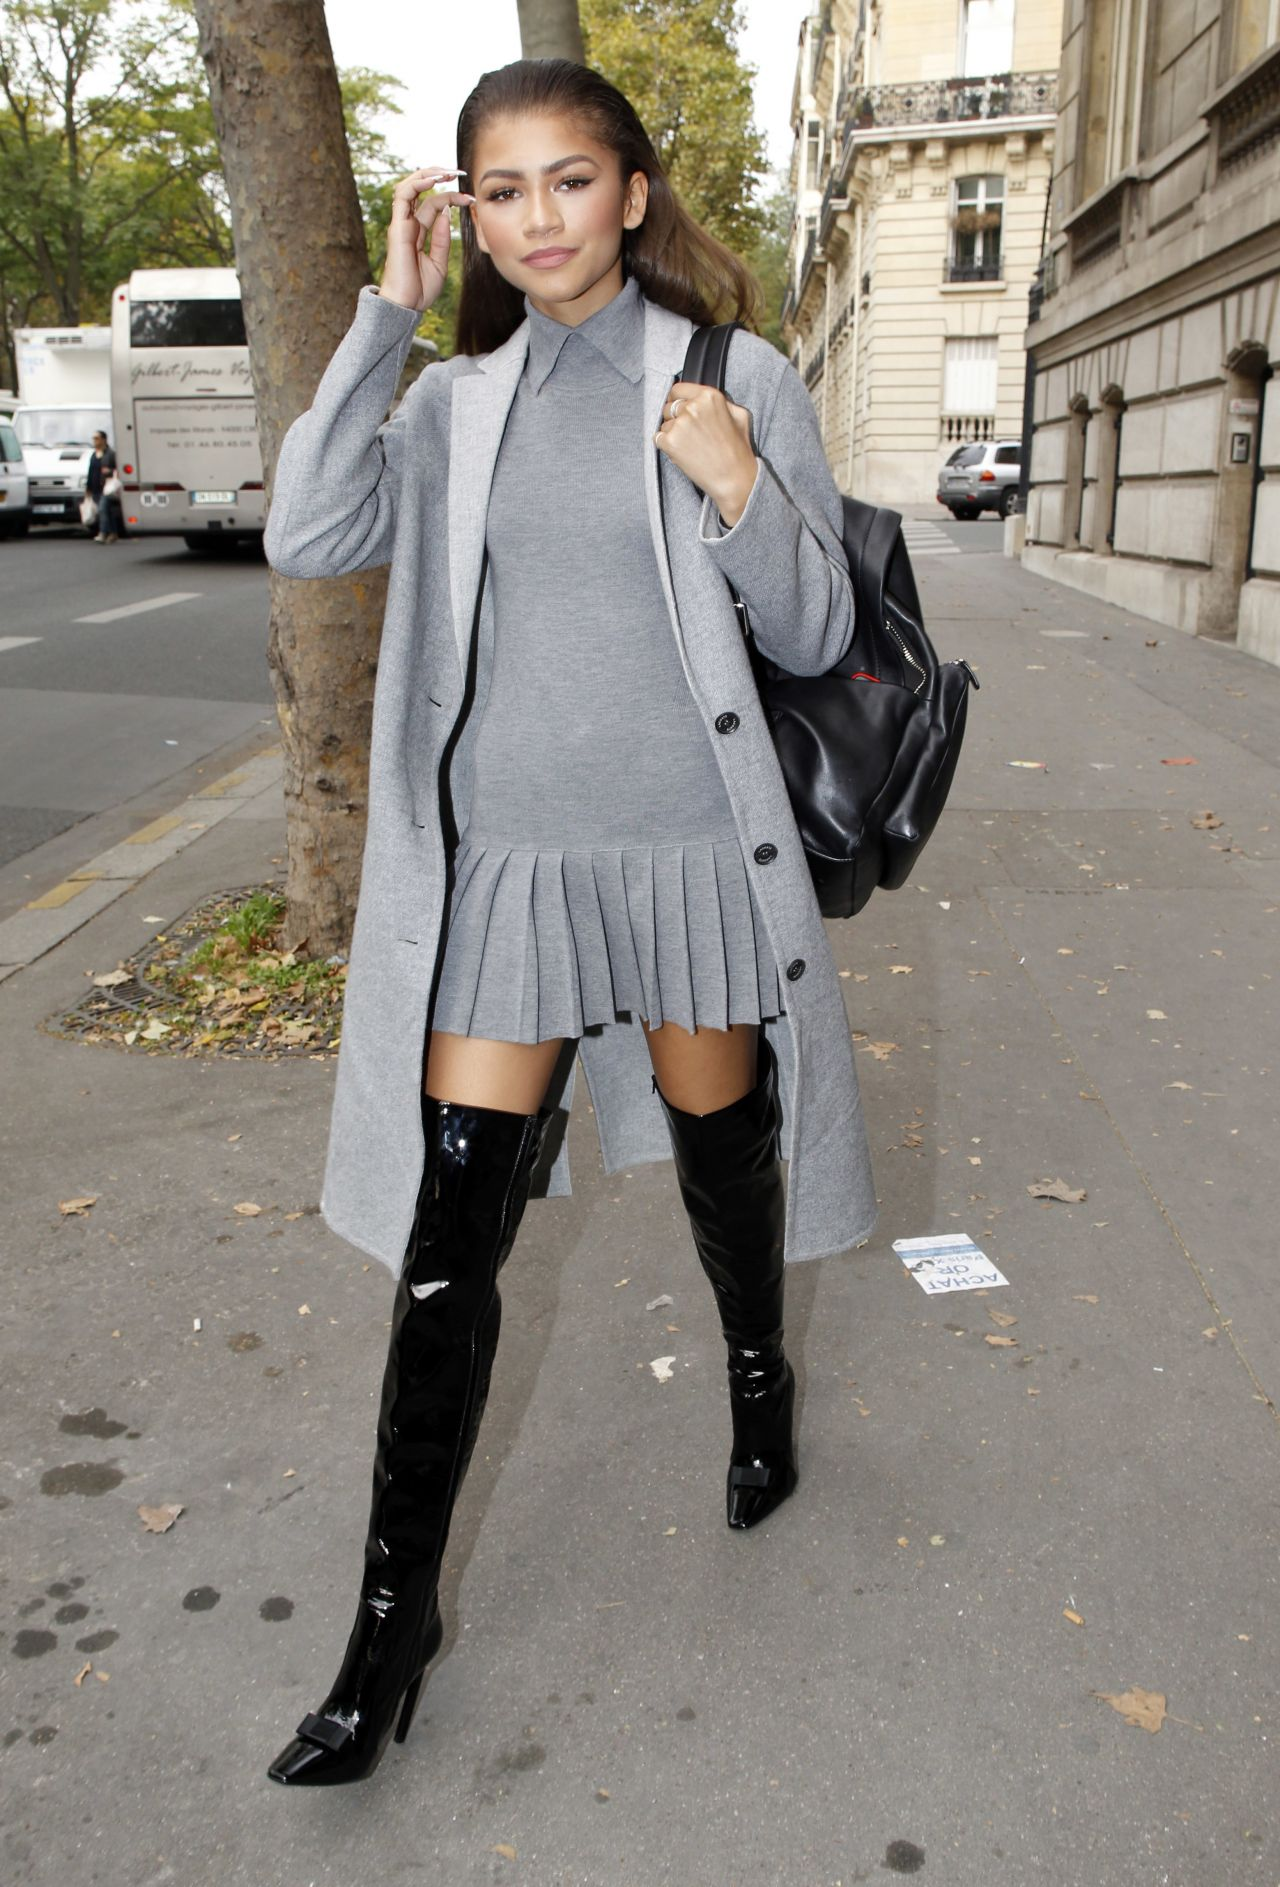 Zendaya Out In Paris Fashionsizzle